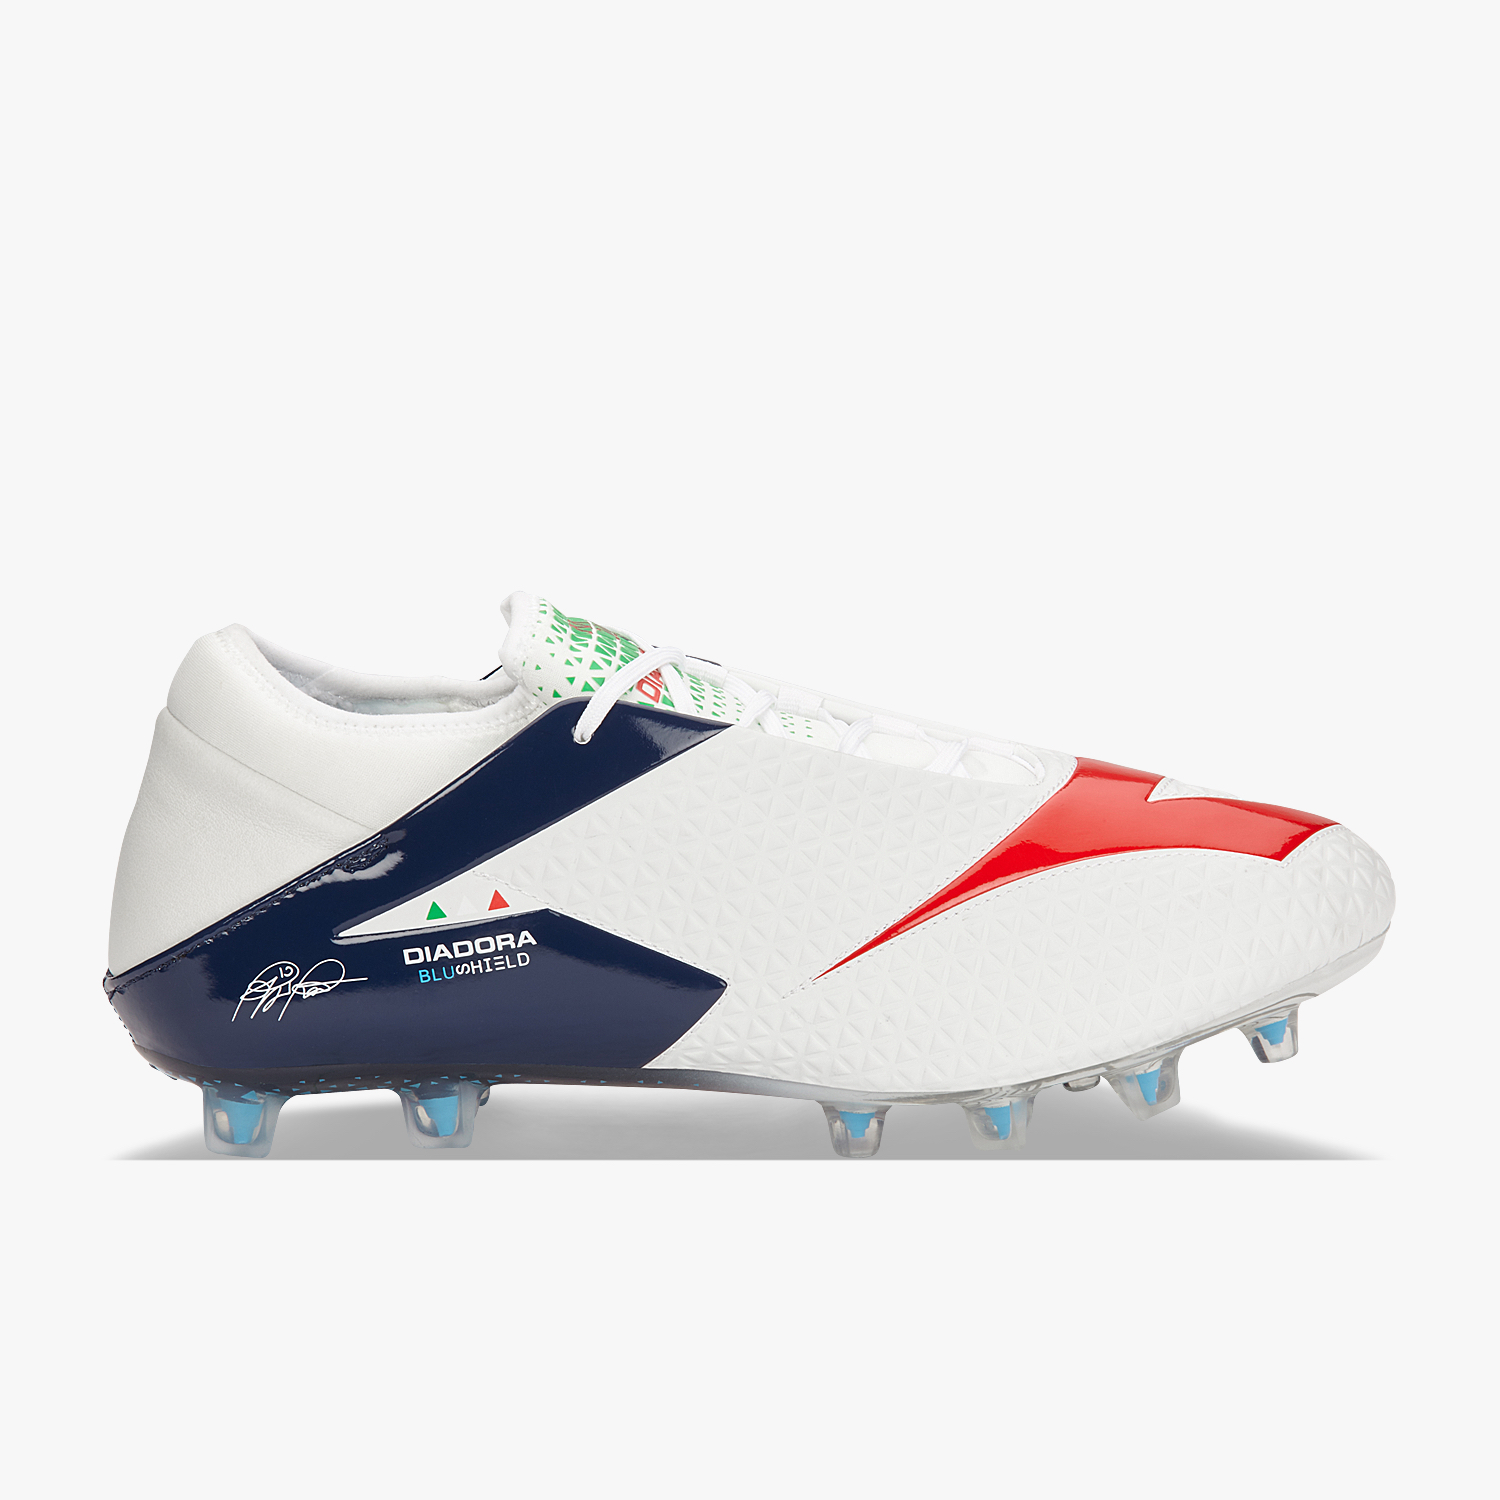 f88cb0065bd Match Winner Blushield Roberto Baggio Diadora Match Winner Blushield  Roberto Baggio Italy OG - Features ...